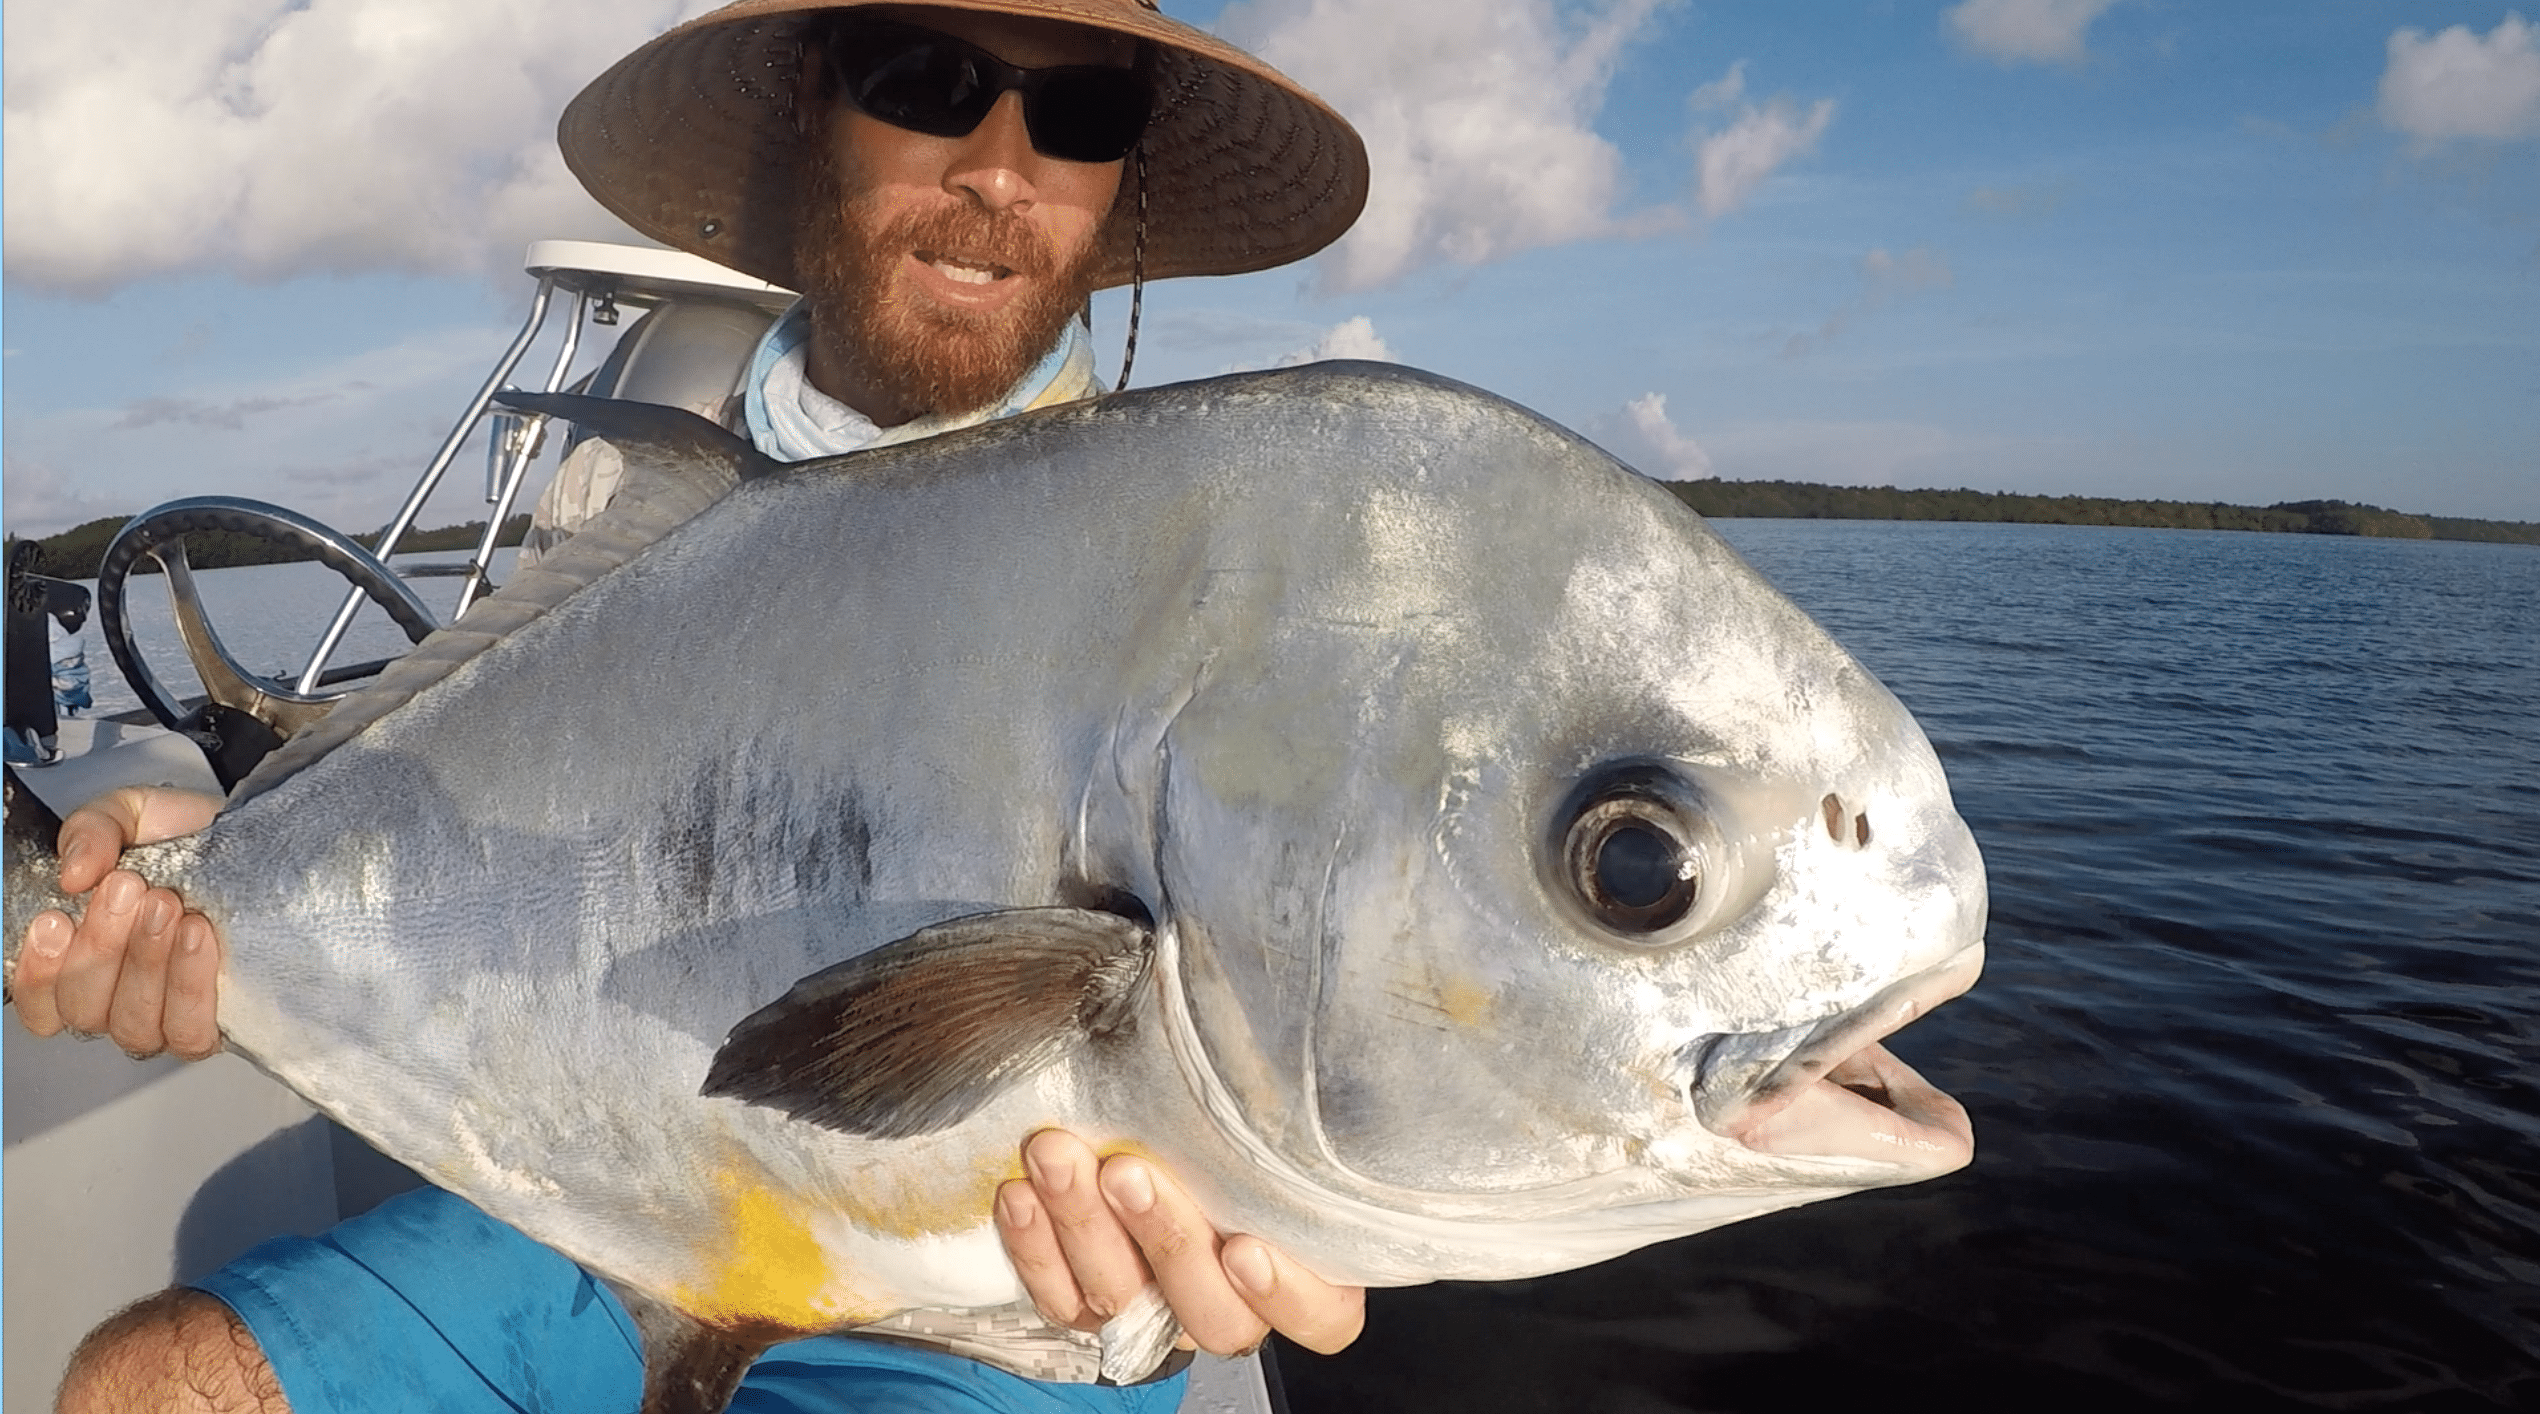 Capt. Charlie Ellis with a biscayne bay permit